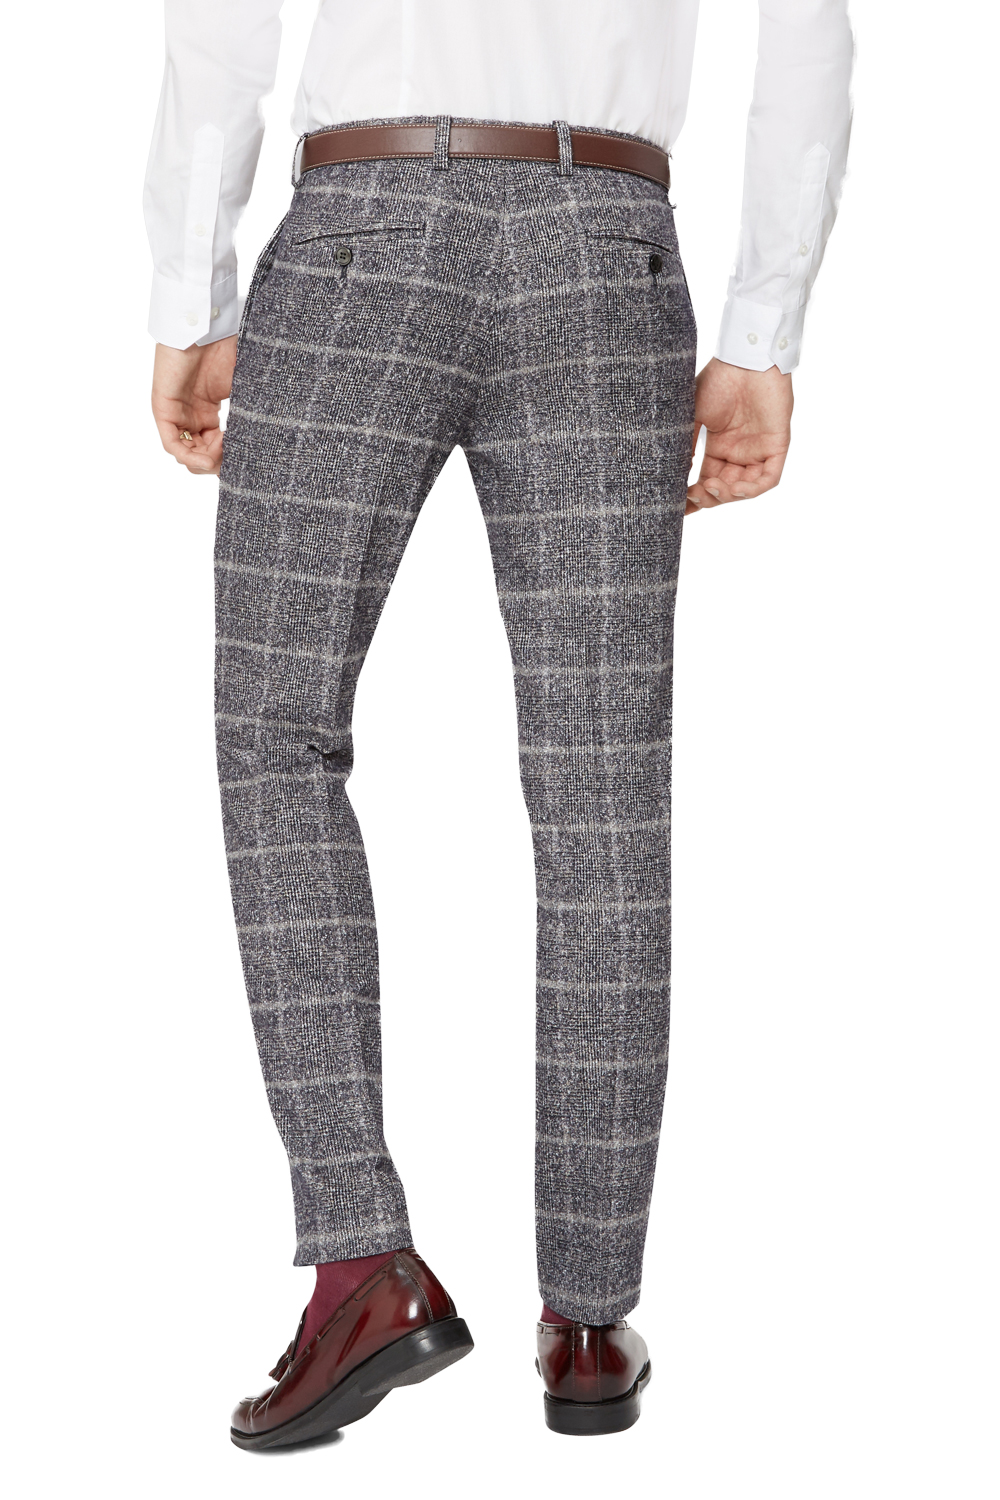 Moss London Mens Grey Suit Trousers Skinny Fit Speckled Check Formal Pants | EBay